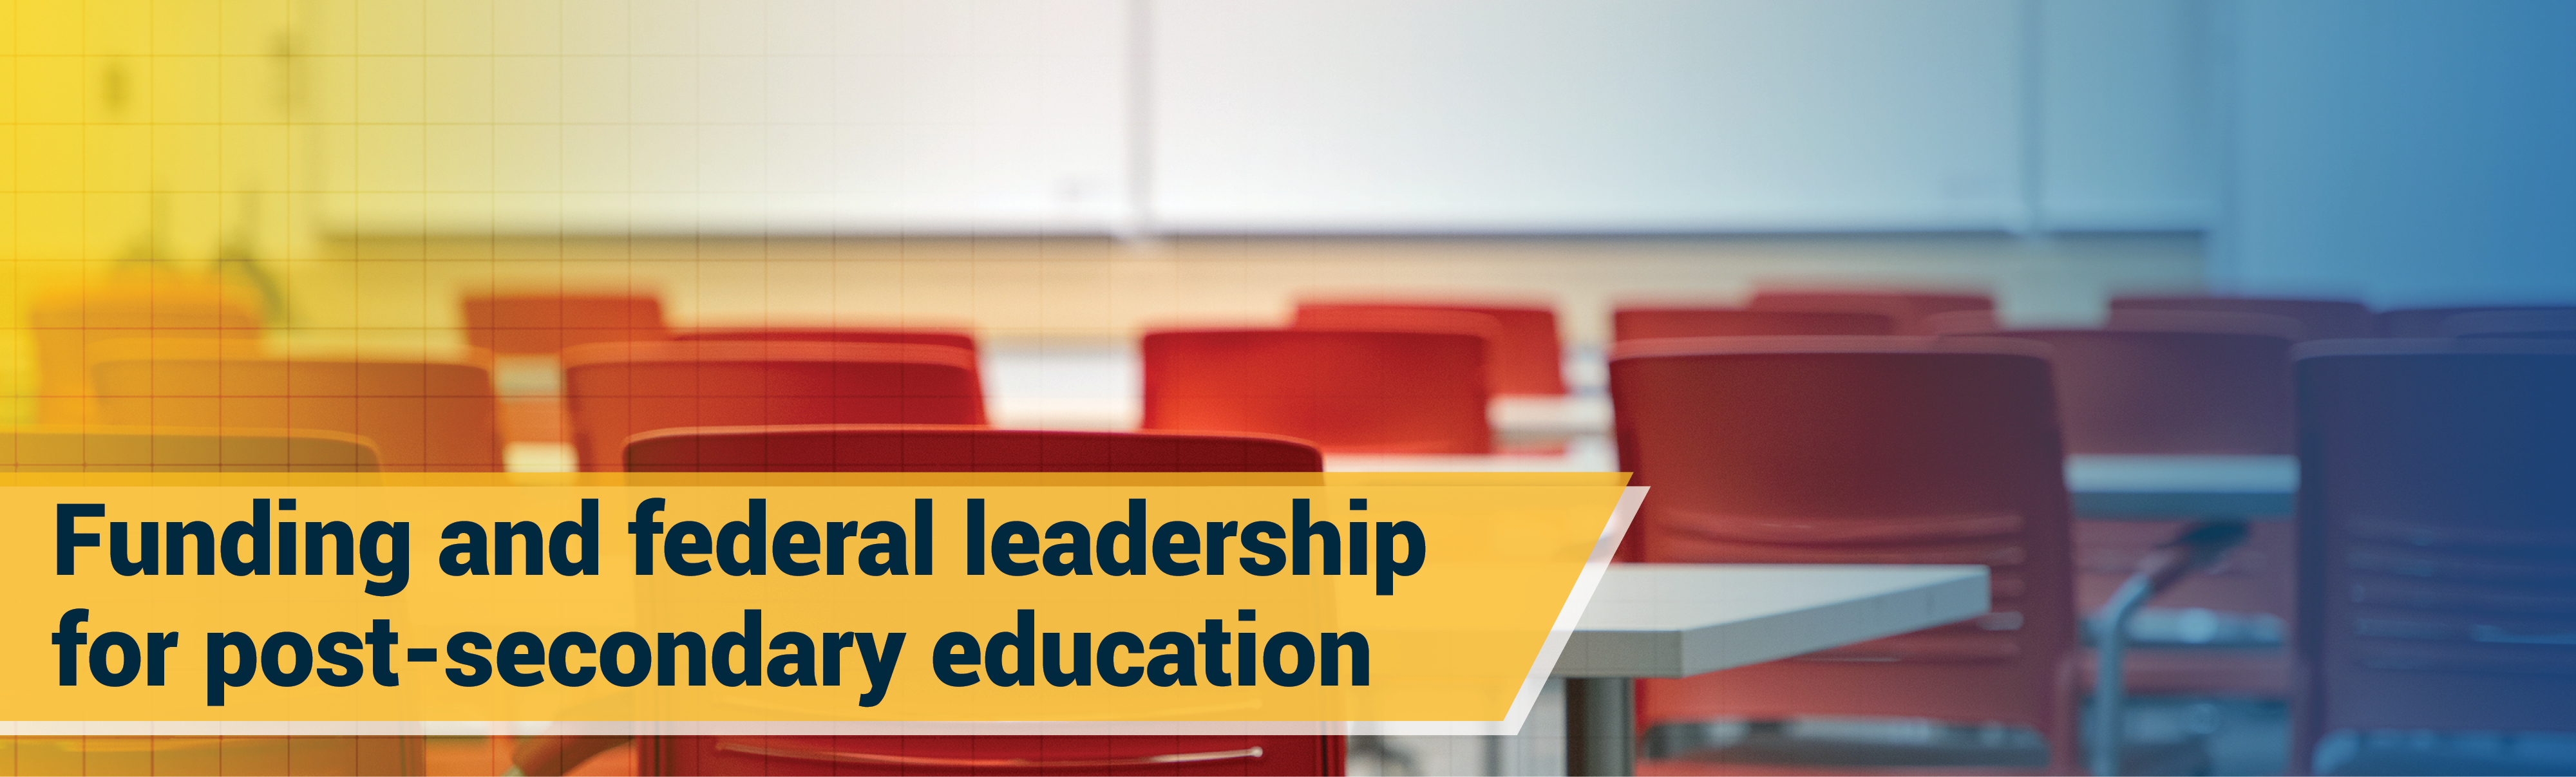 Funding and federal leadership for post-secondary education